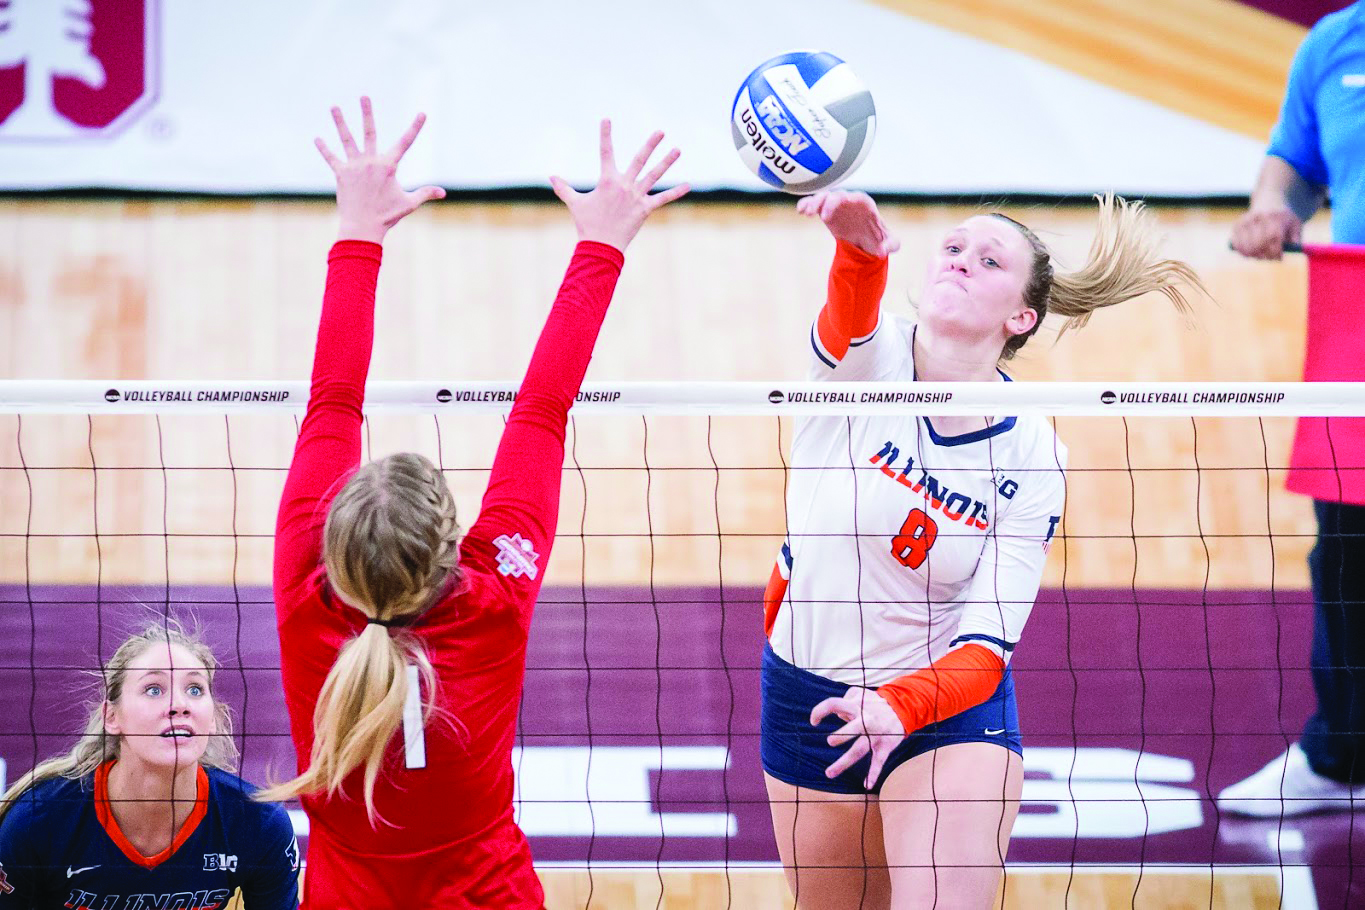 Illinois outside hitter Beth Prince (8) spikes the ball during the match against Nebraska in the Final Four of the NCAA tournament at the Target Center on Thursday, Dec. 13, 2018. Nebraska defeated Illinois 3-2.